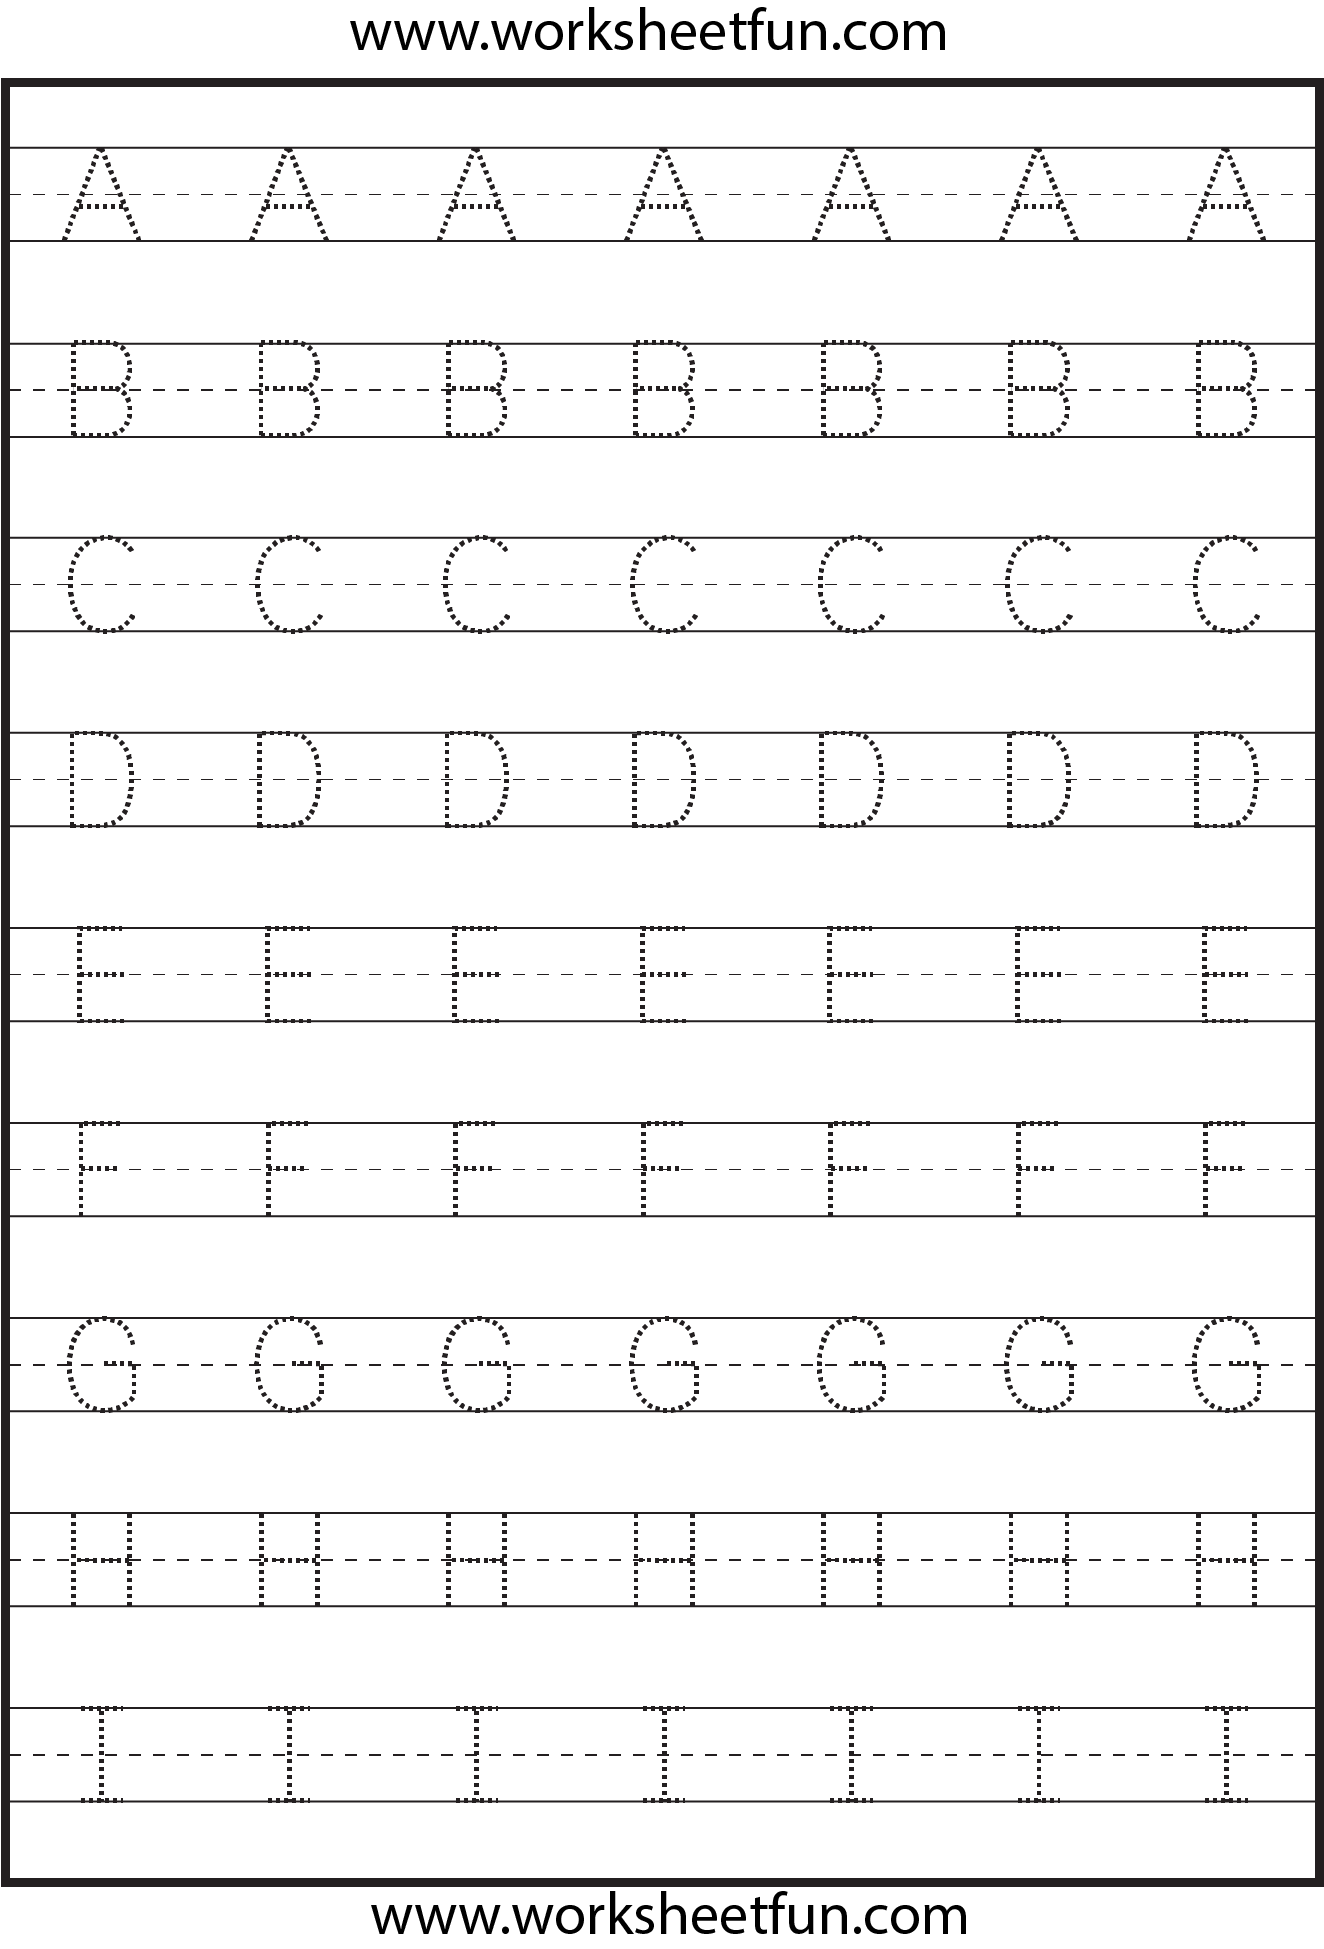 worksheet Dot To Dot Name Tracing Worksheets tracing uppercase letters capital 3 worksheets free letter tracing